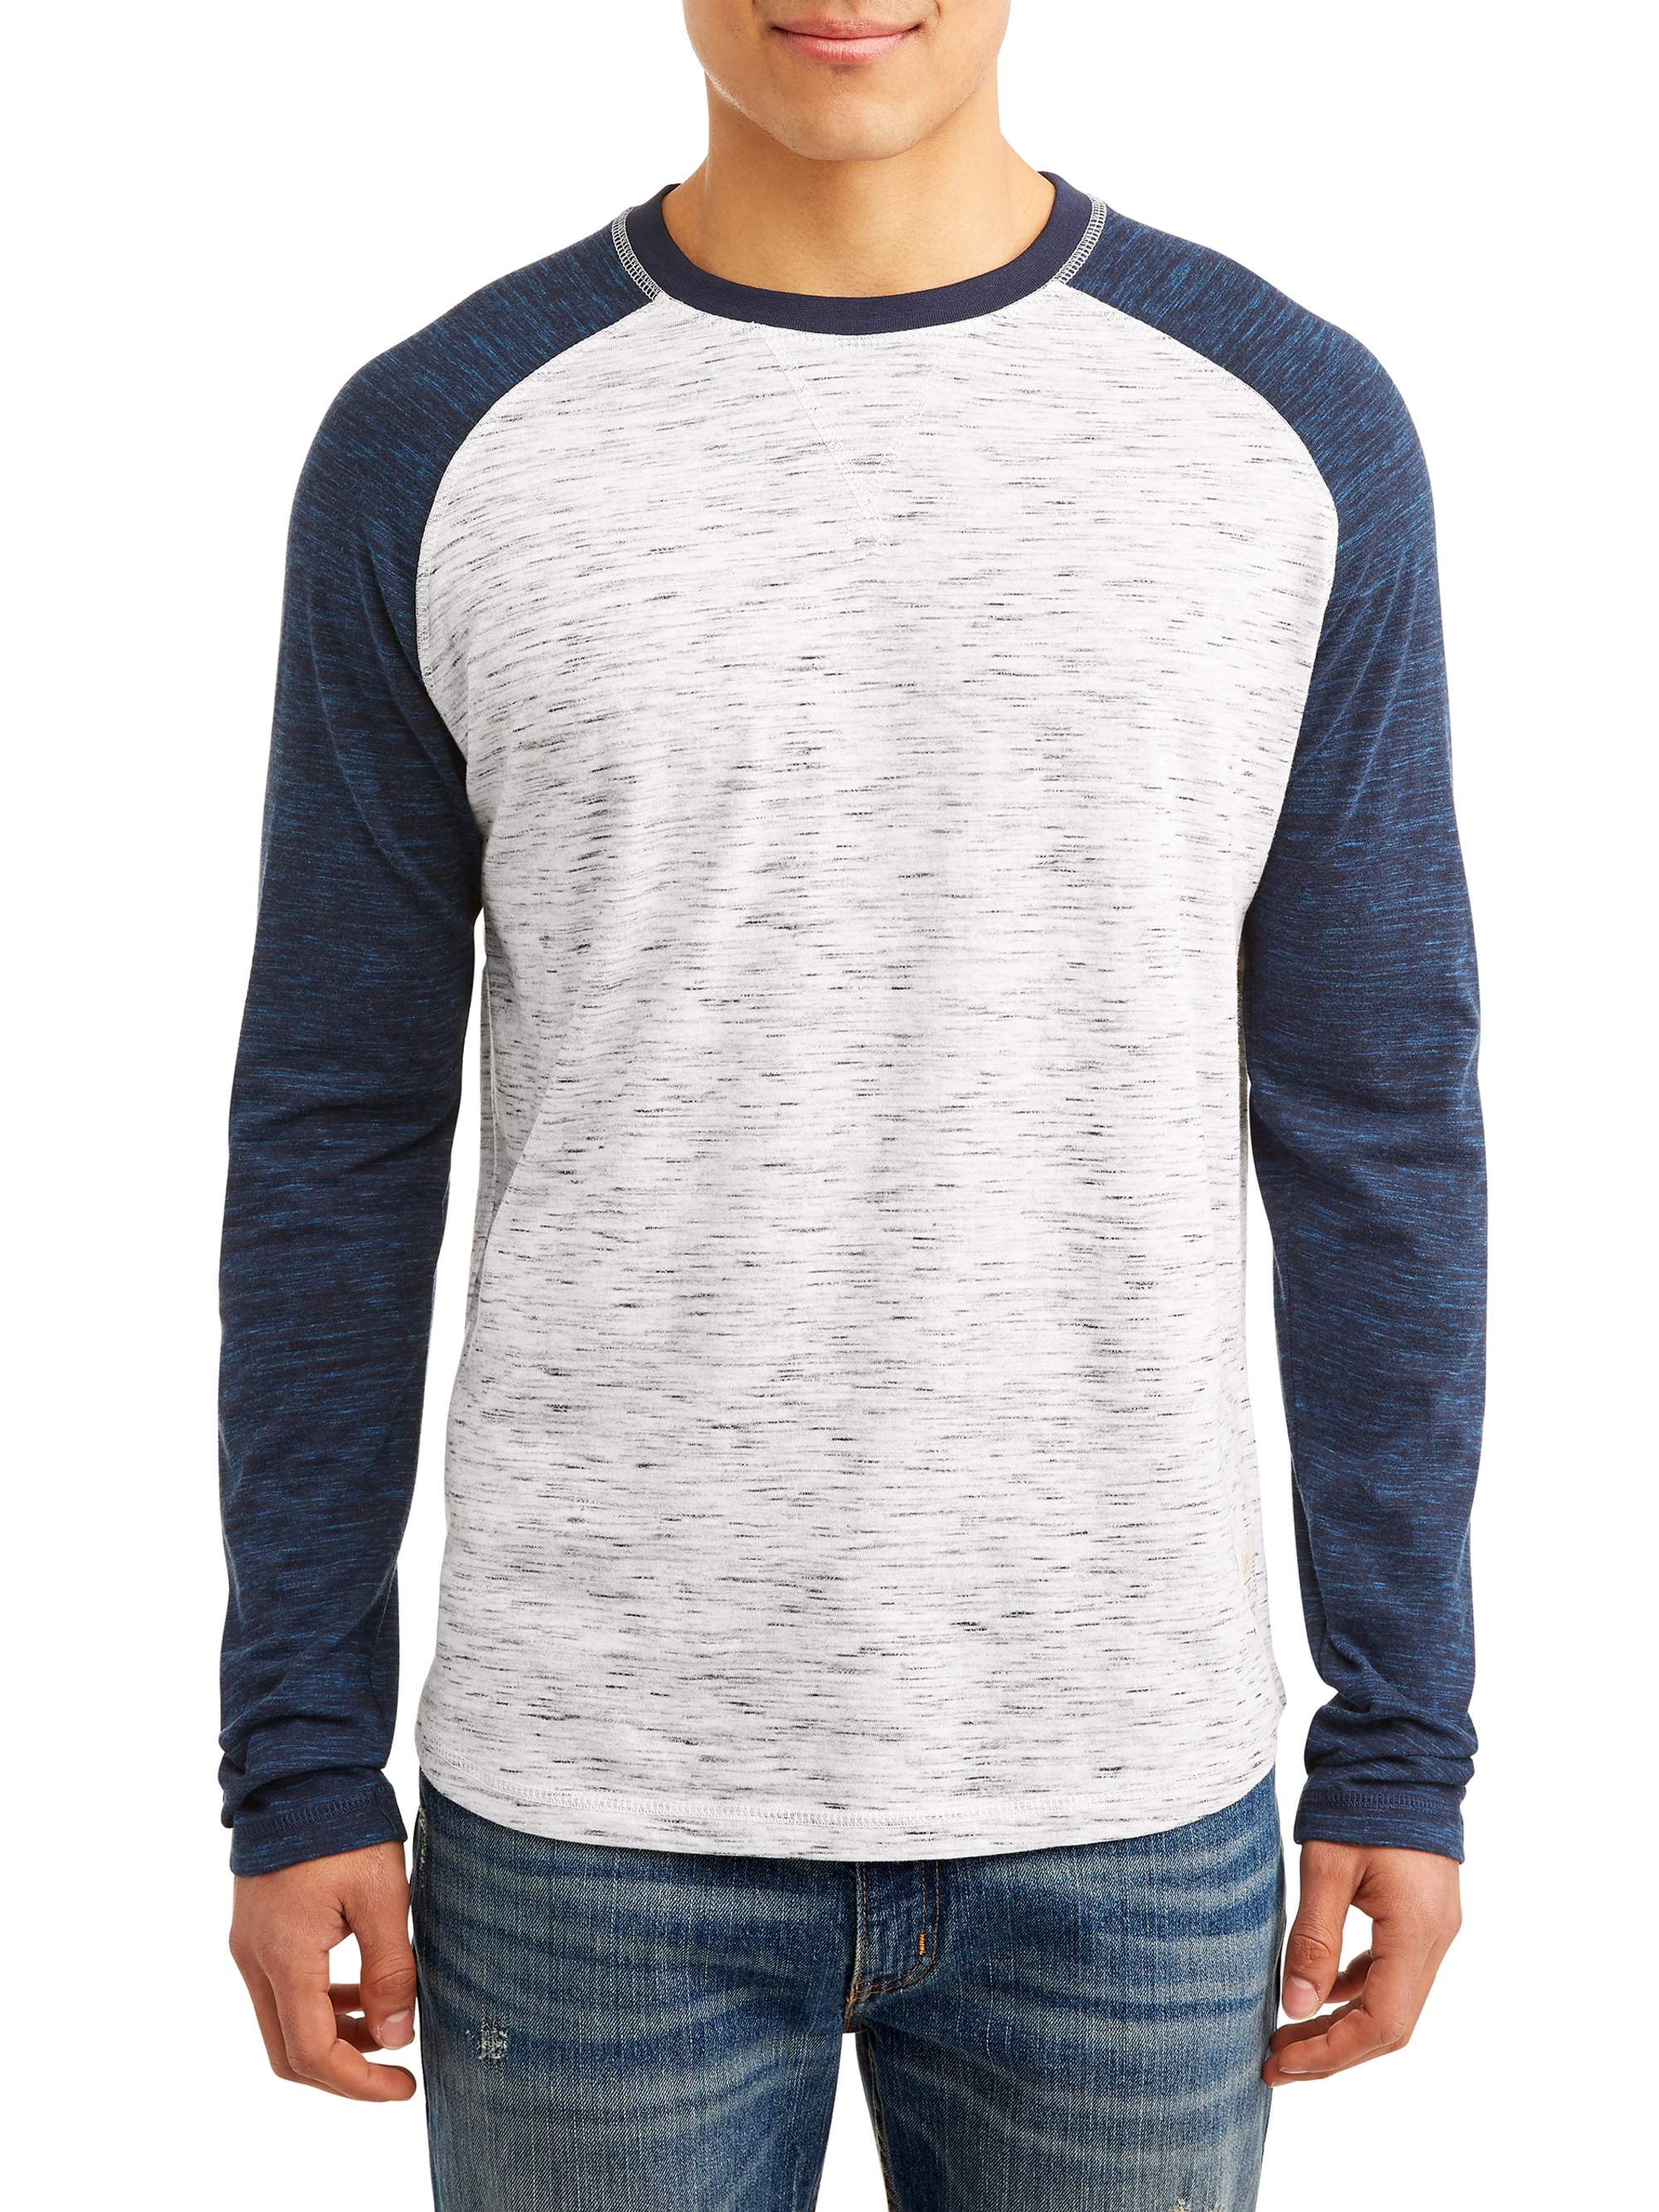 Lee Men's Long Sleeve Baseball Tee, Available Up to Size 2XL